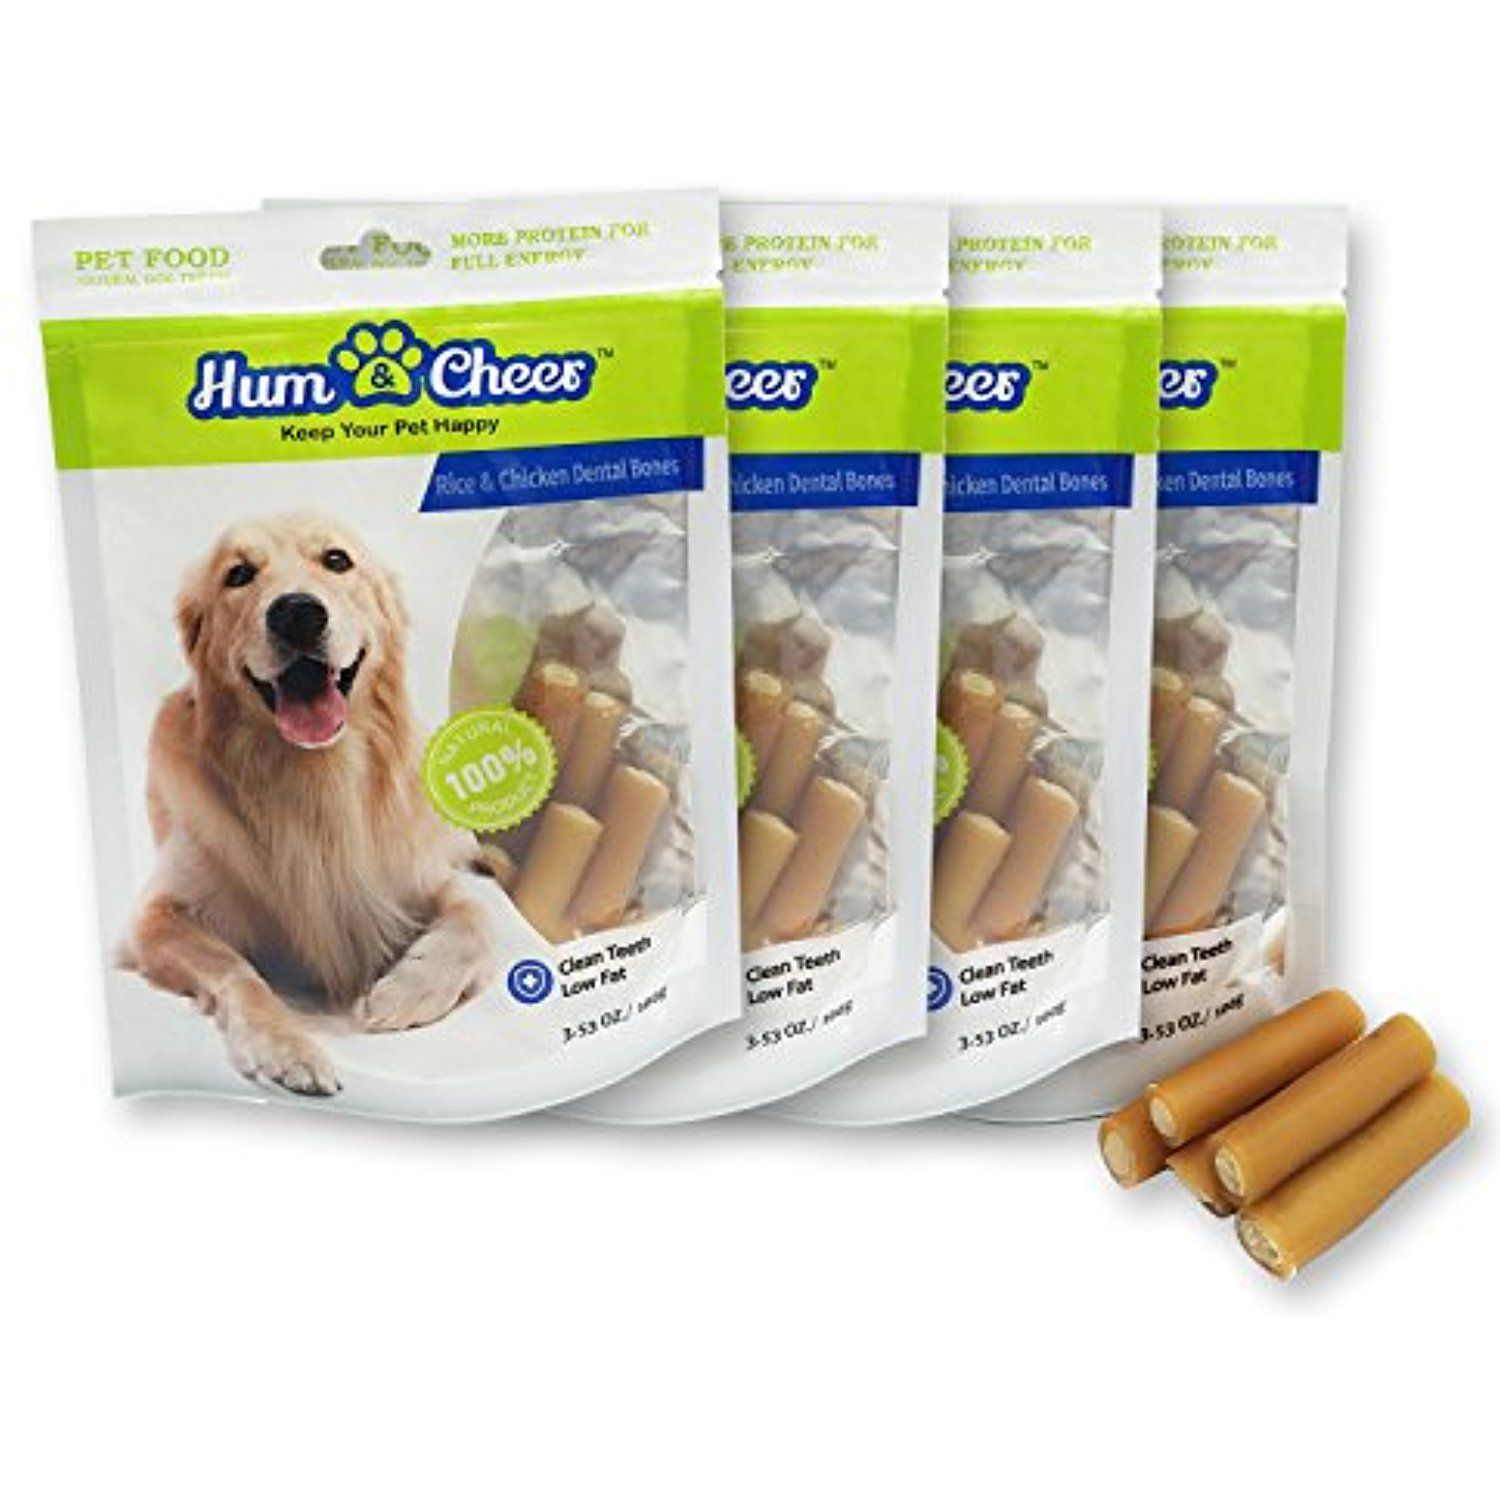 Hum Cheer Natural Balance Dog Treats Puppy Training Snacks Rice